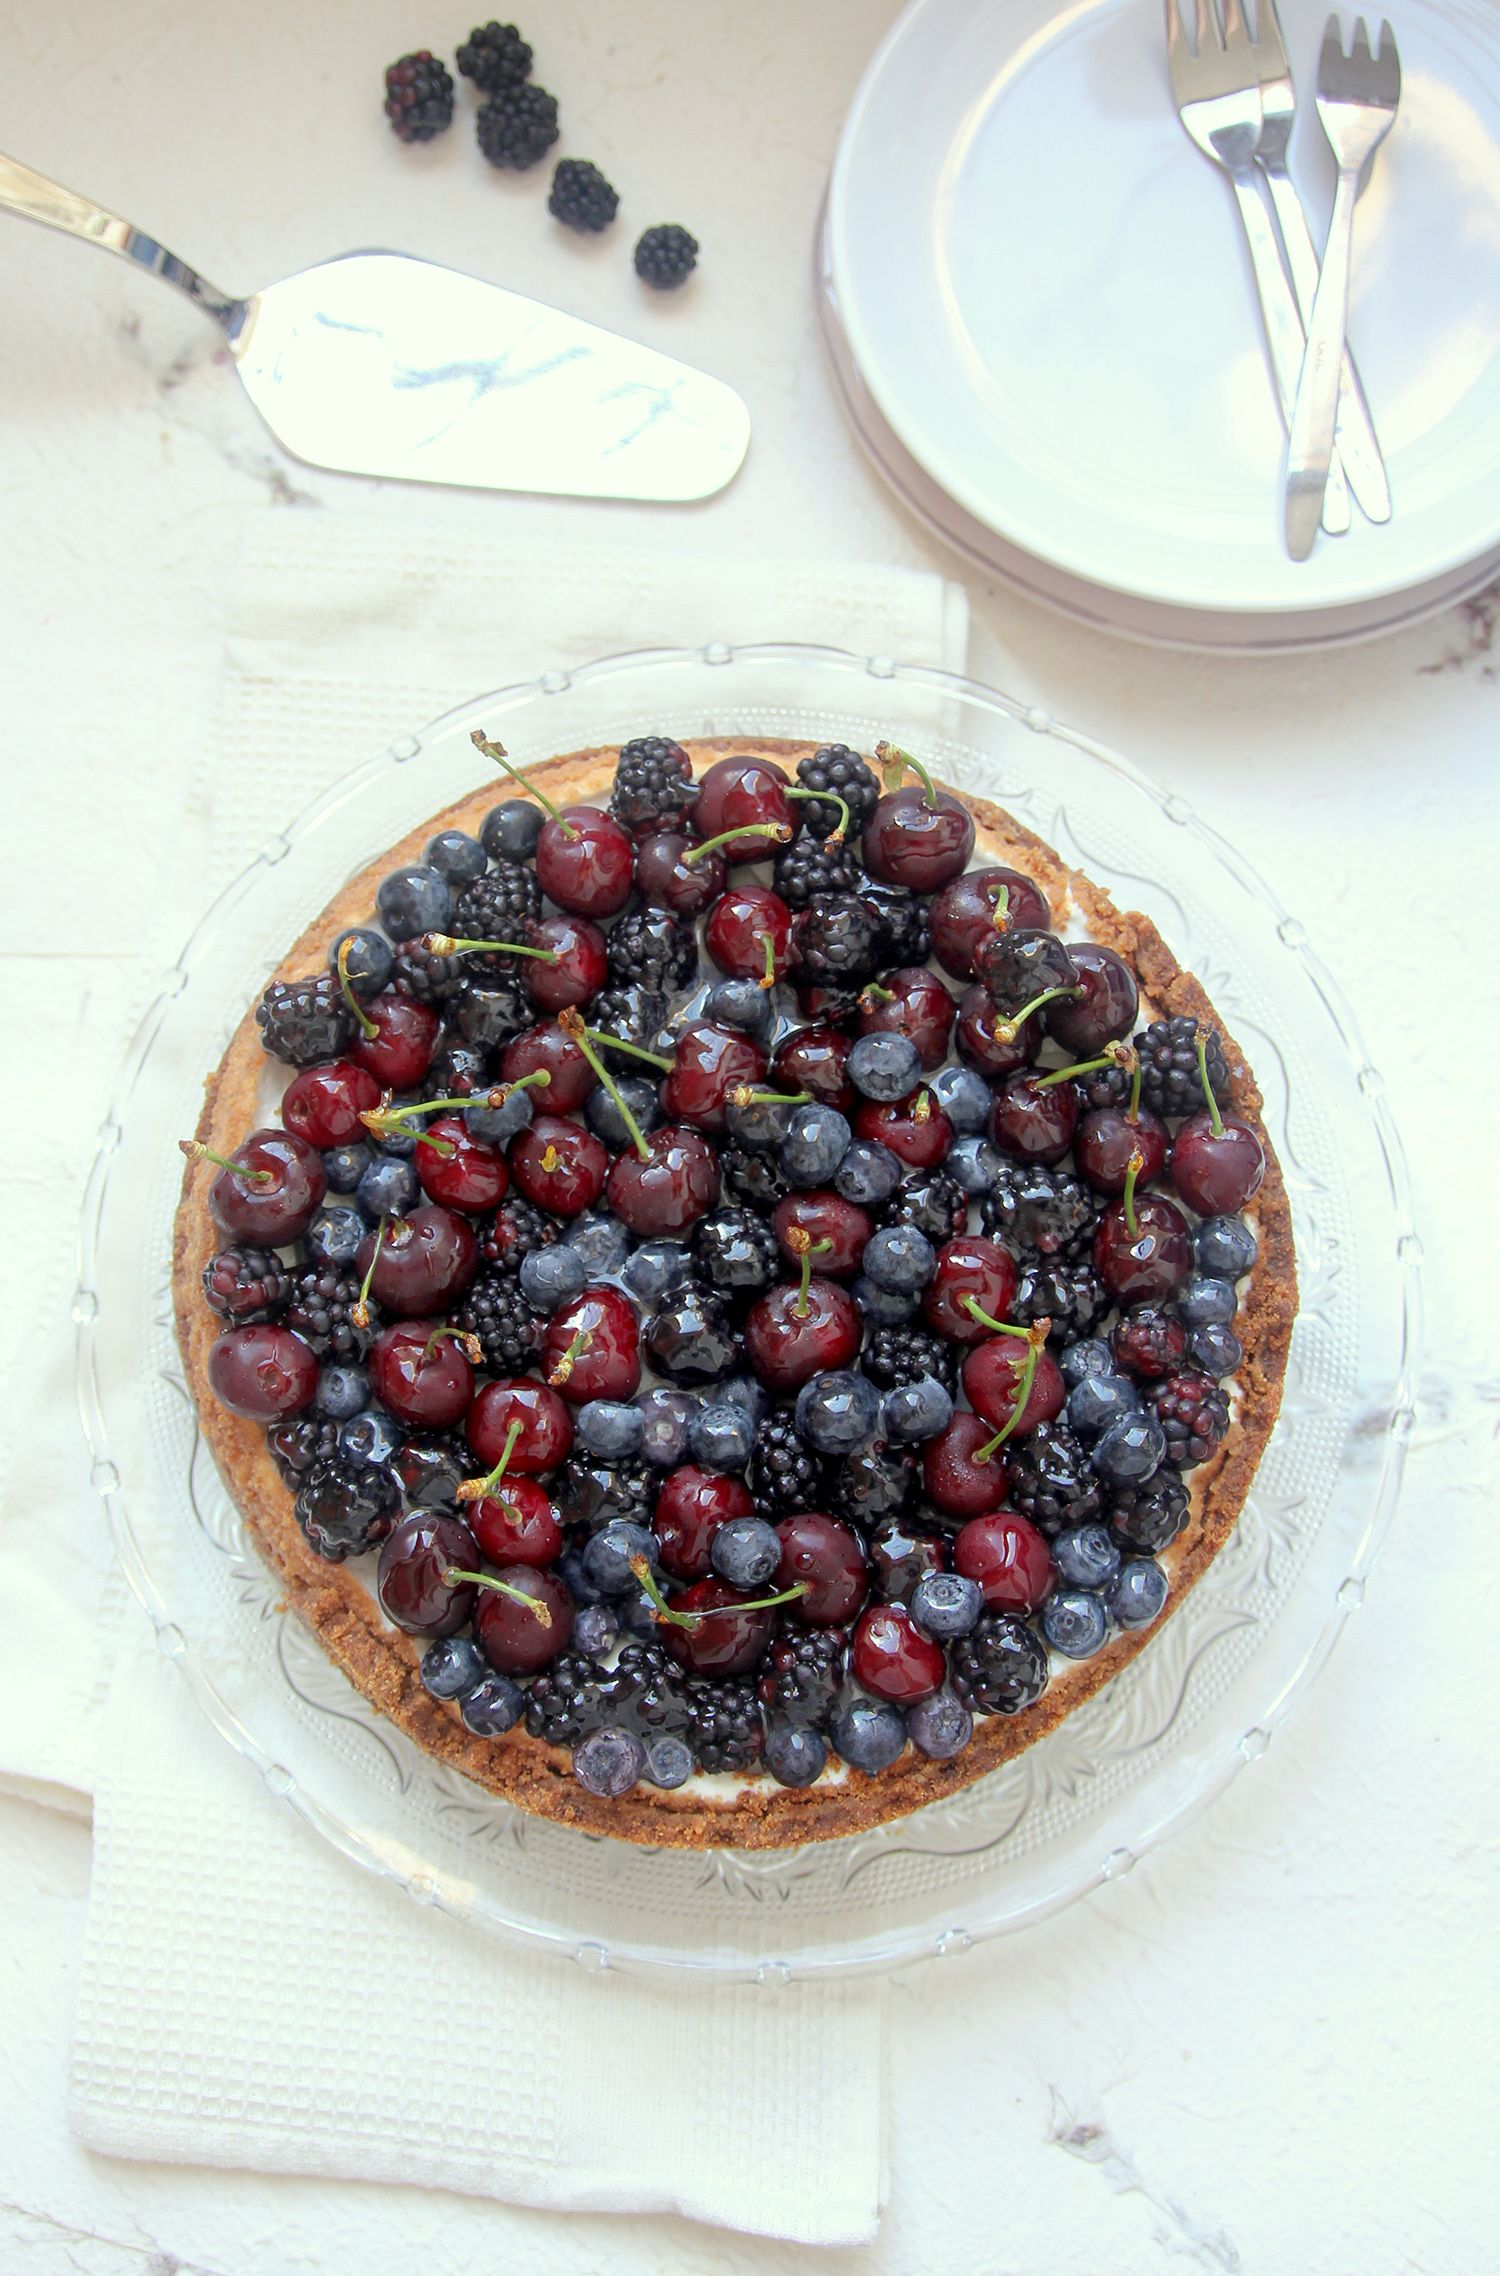 Almond Cheesecake with Berries